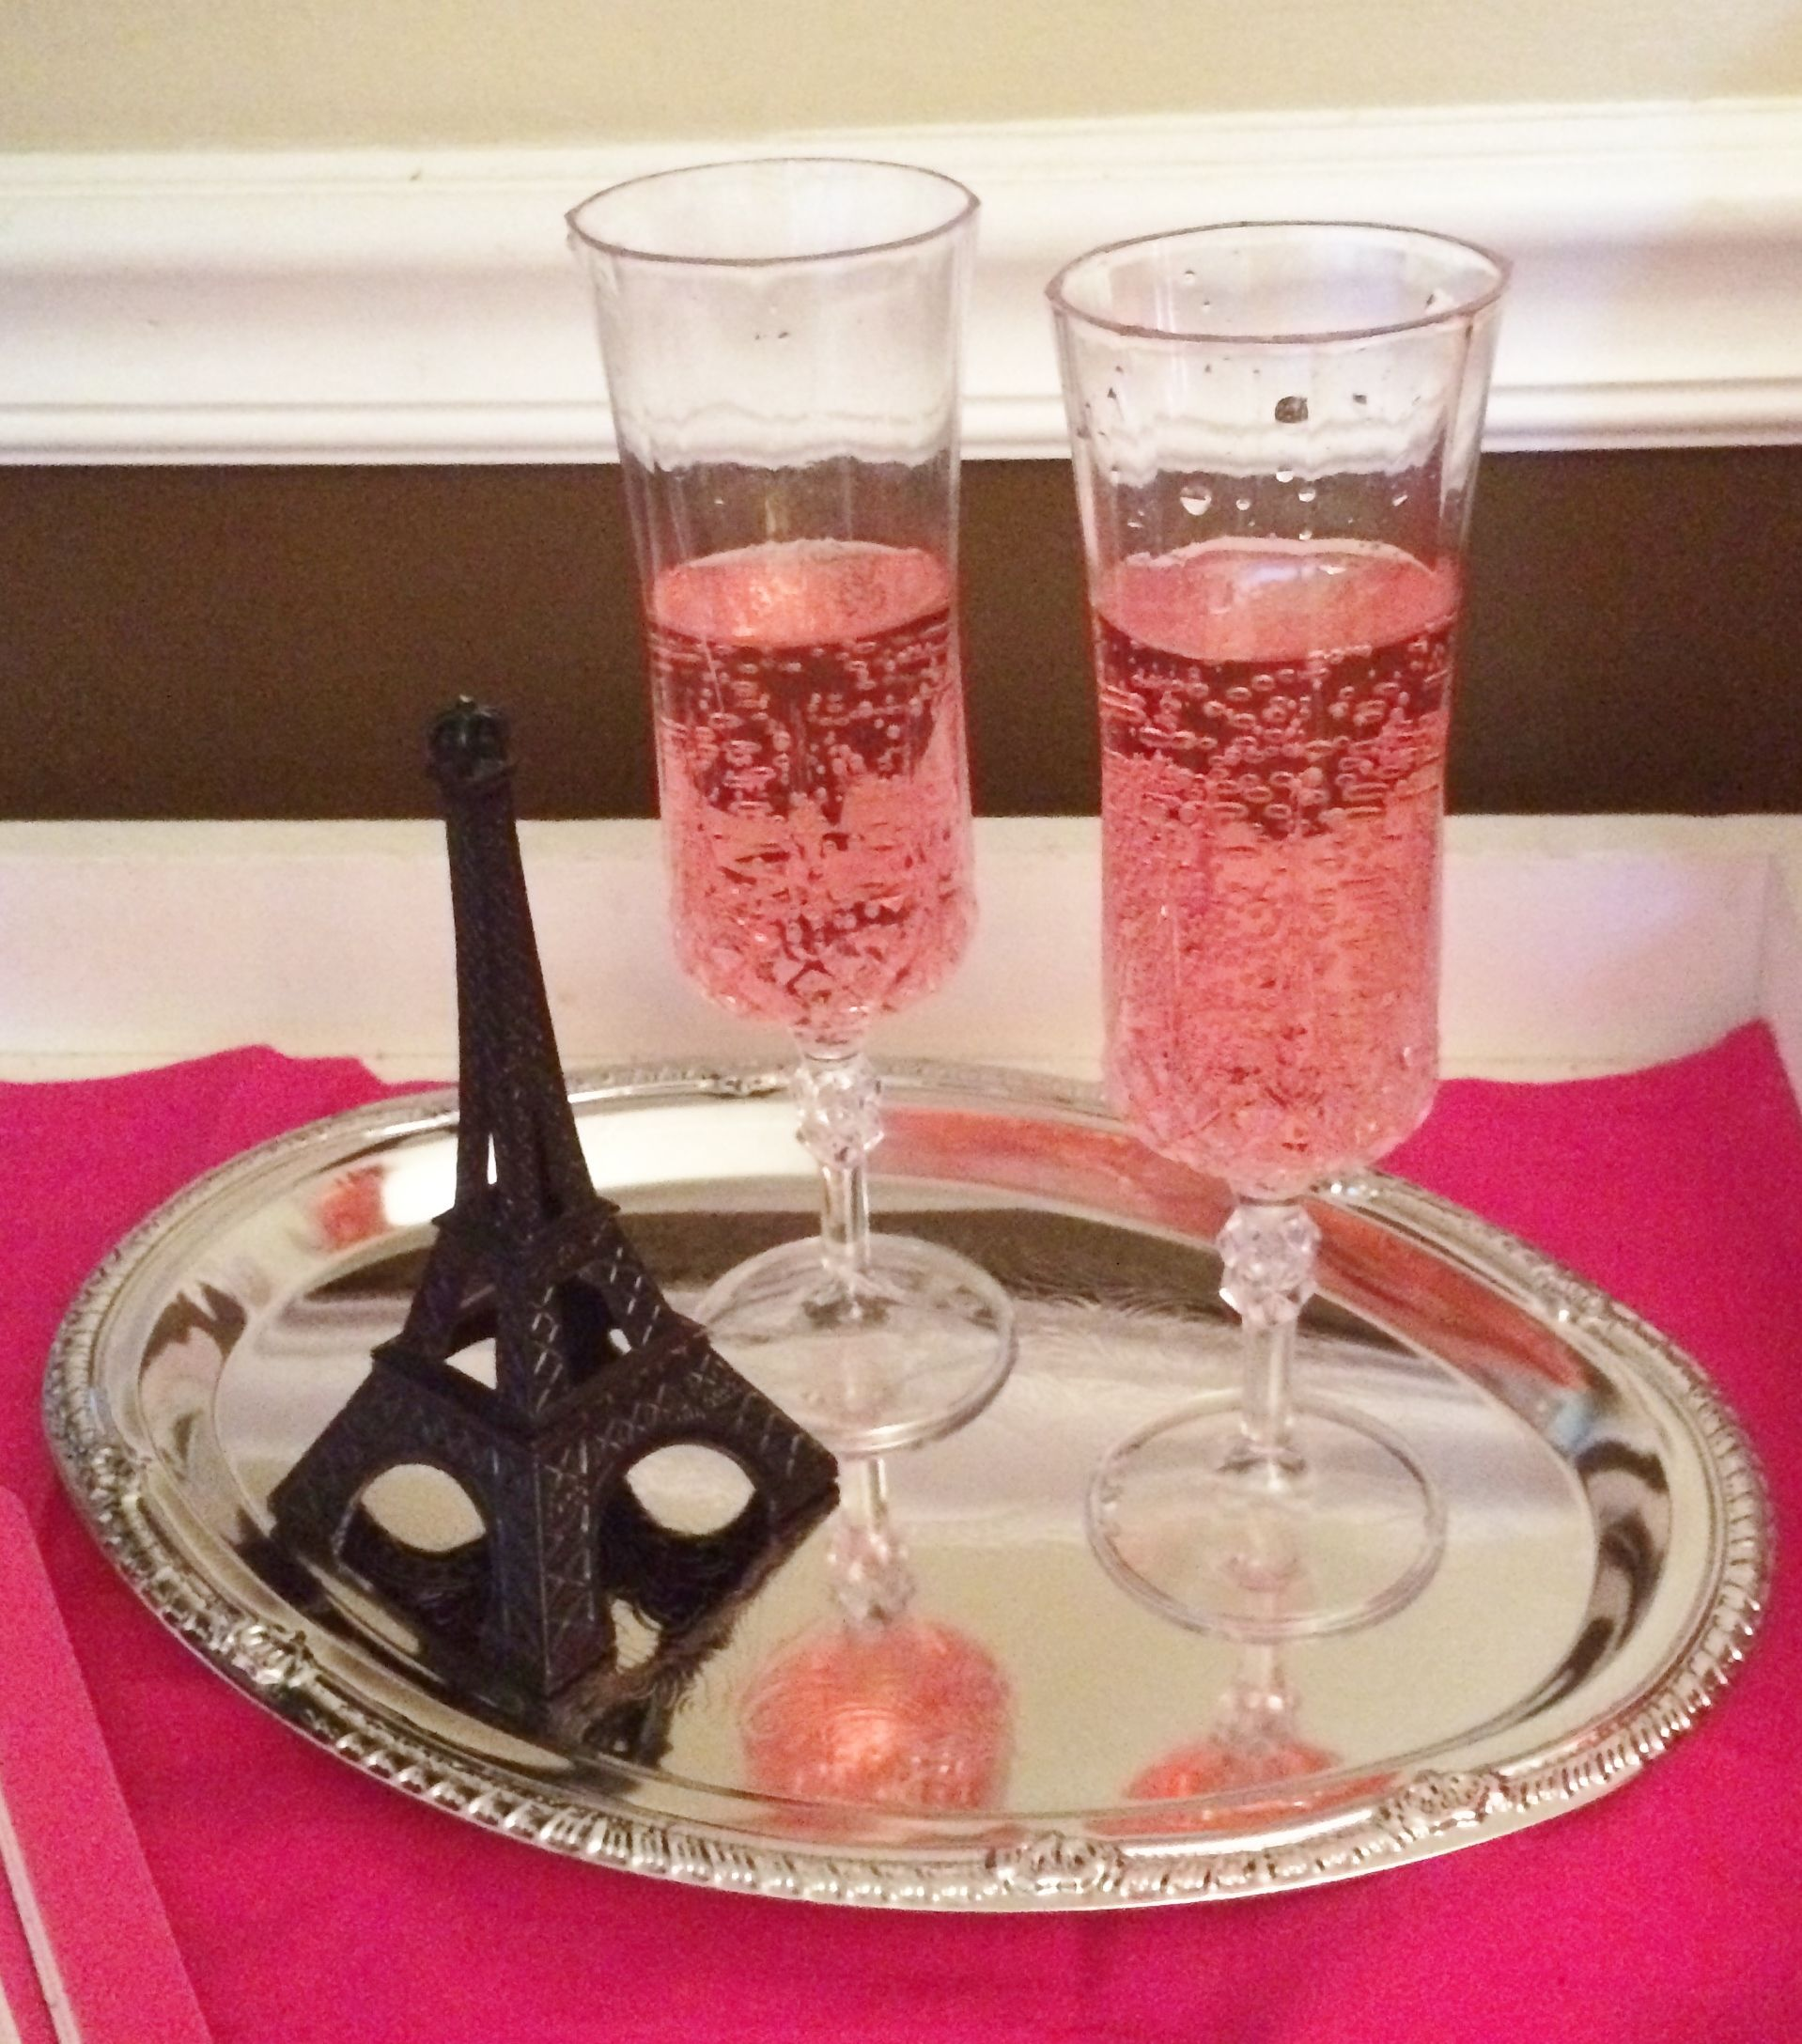 American Girl Passport To Paris Spa Party Dollar Tree Silver Tray And Glasses Paris Birthday Parties Spa Birthday Parties Paris Party